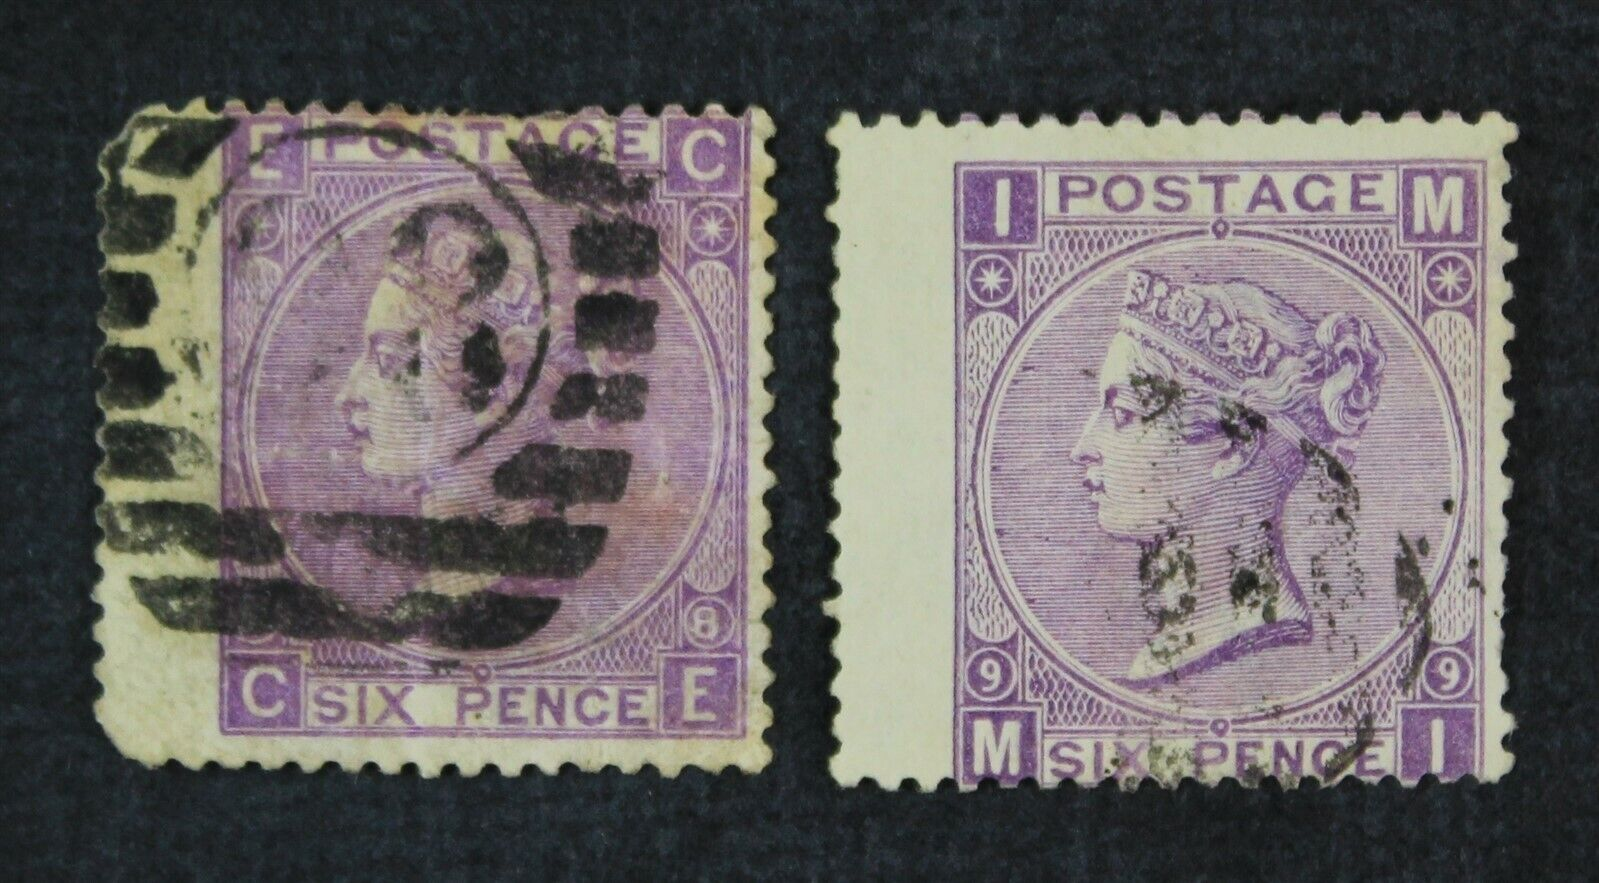 CKStamps Great Britain Stamps Collection Scott 51 Victoria Used P 8 Crease P 9 - $2.25